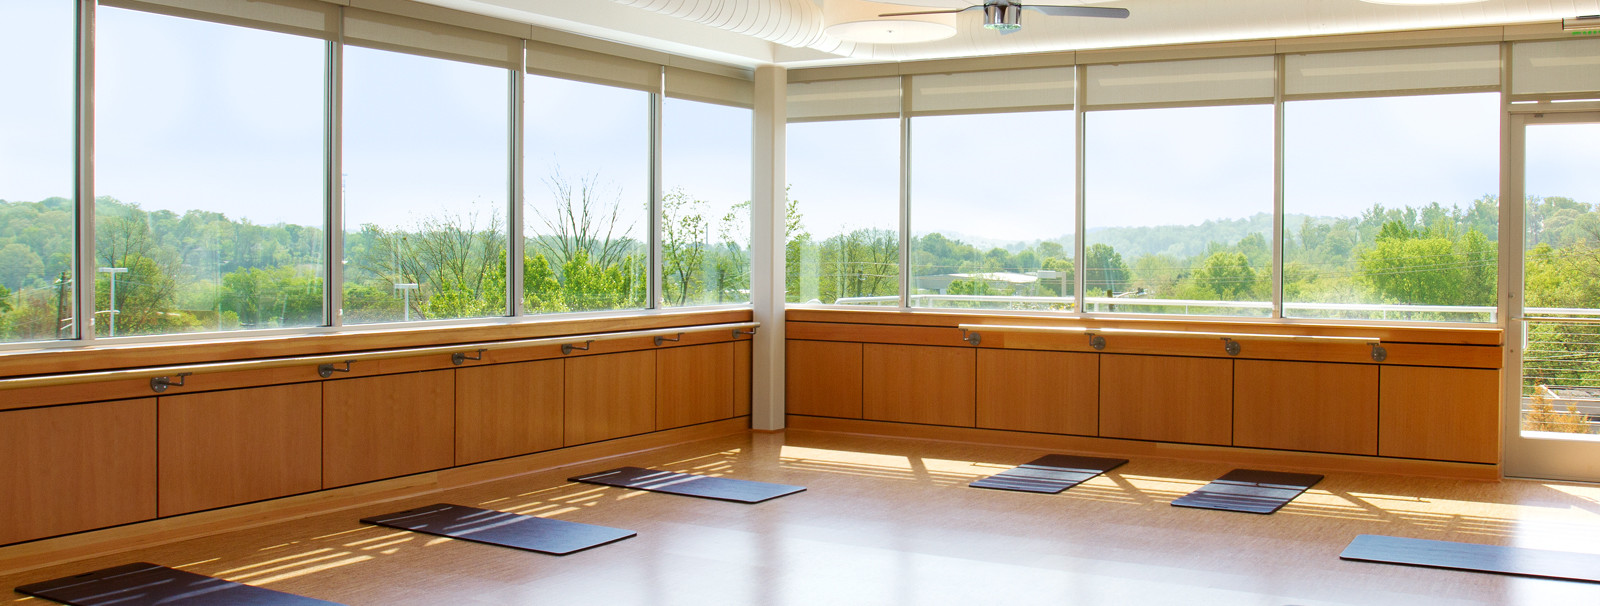 knox hardwood flooring co knoxville tn of barre classes at knoxville bearden hill tennessee studio regarding barre classes at knoxville bearden hill tennessee studio official barre3a studio